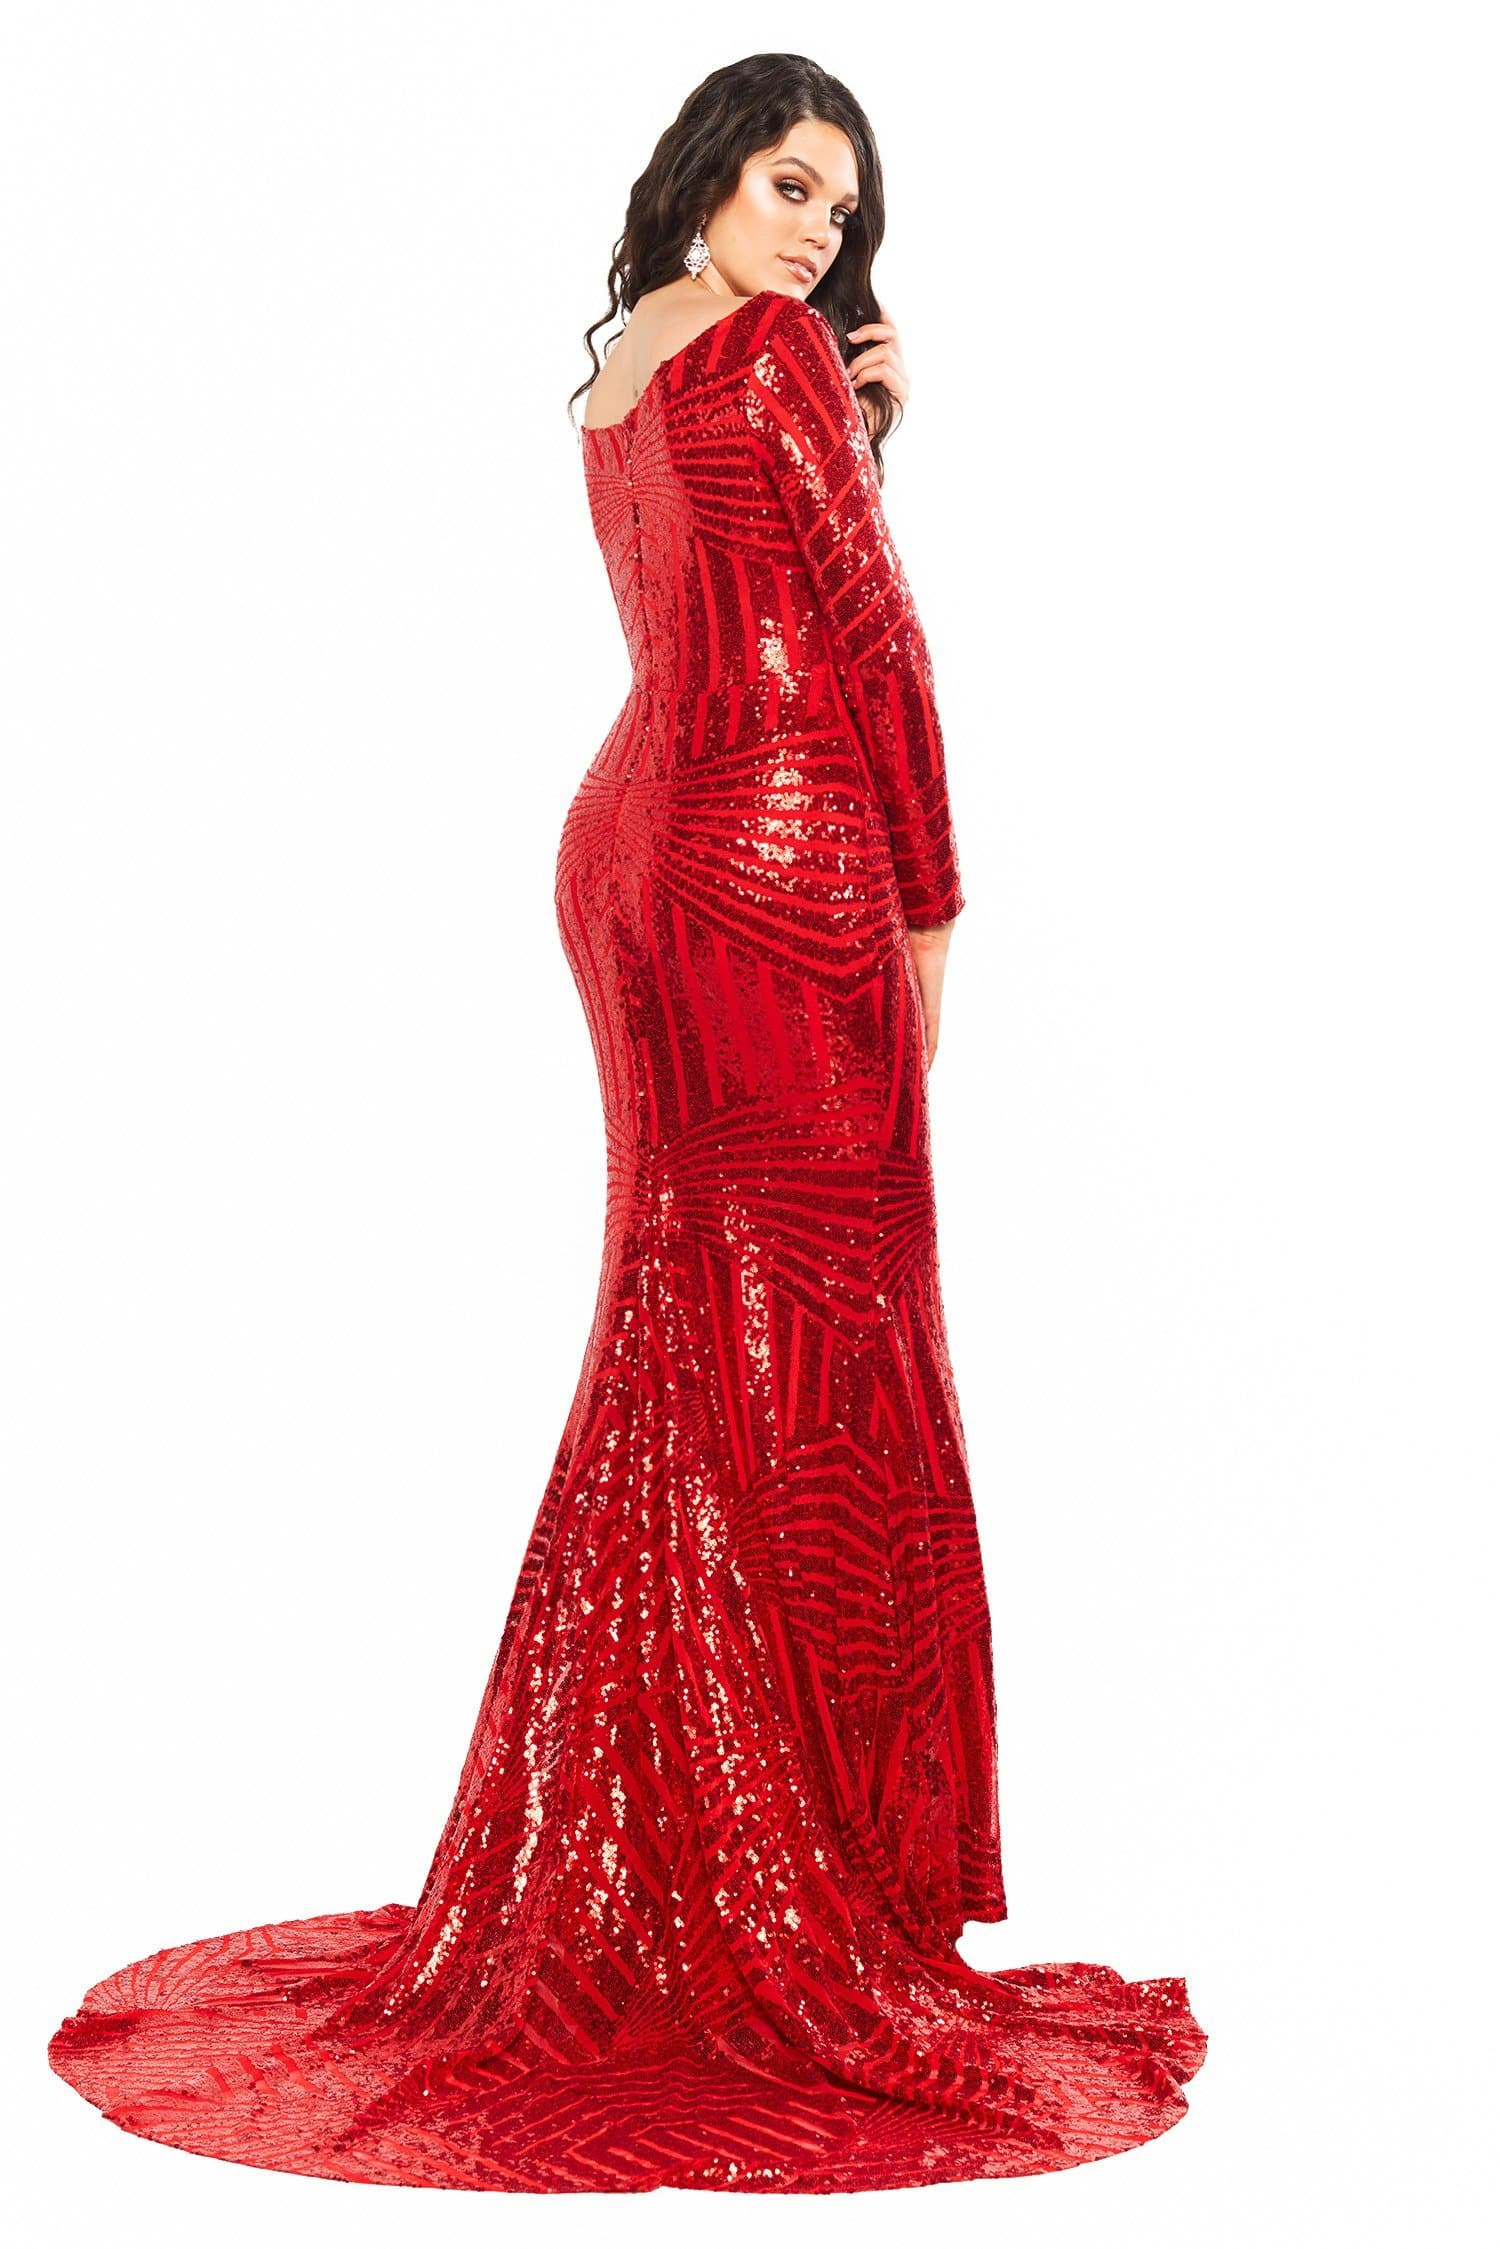 A&N Curve Kaya - Red Sequin Dress with Long Sleeves & Side Slit